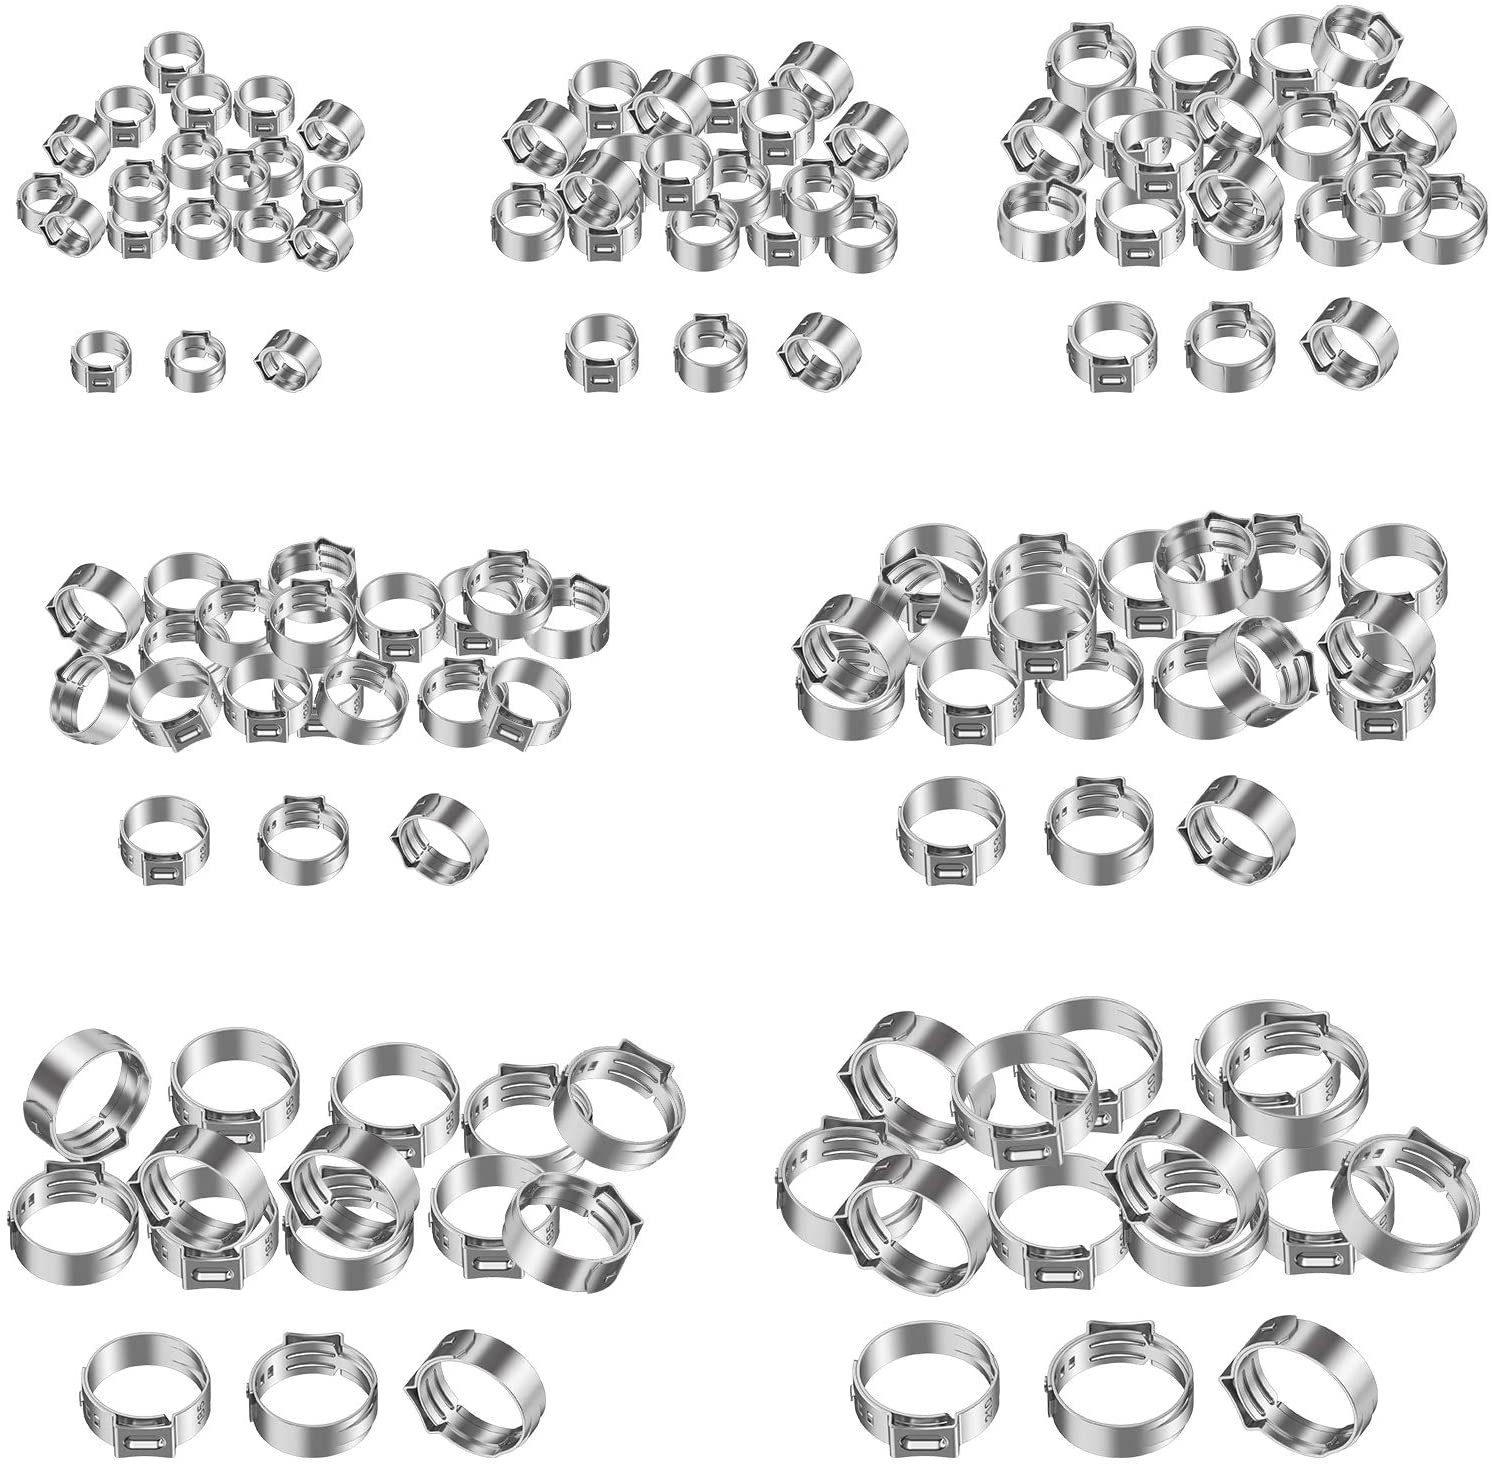 Proster 130pcs Hose Clamps Rings 7-21mm 304 Single Ear Stepless Hose Clamps Assortment Stainless Steel Cinch Clamp Rings